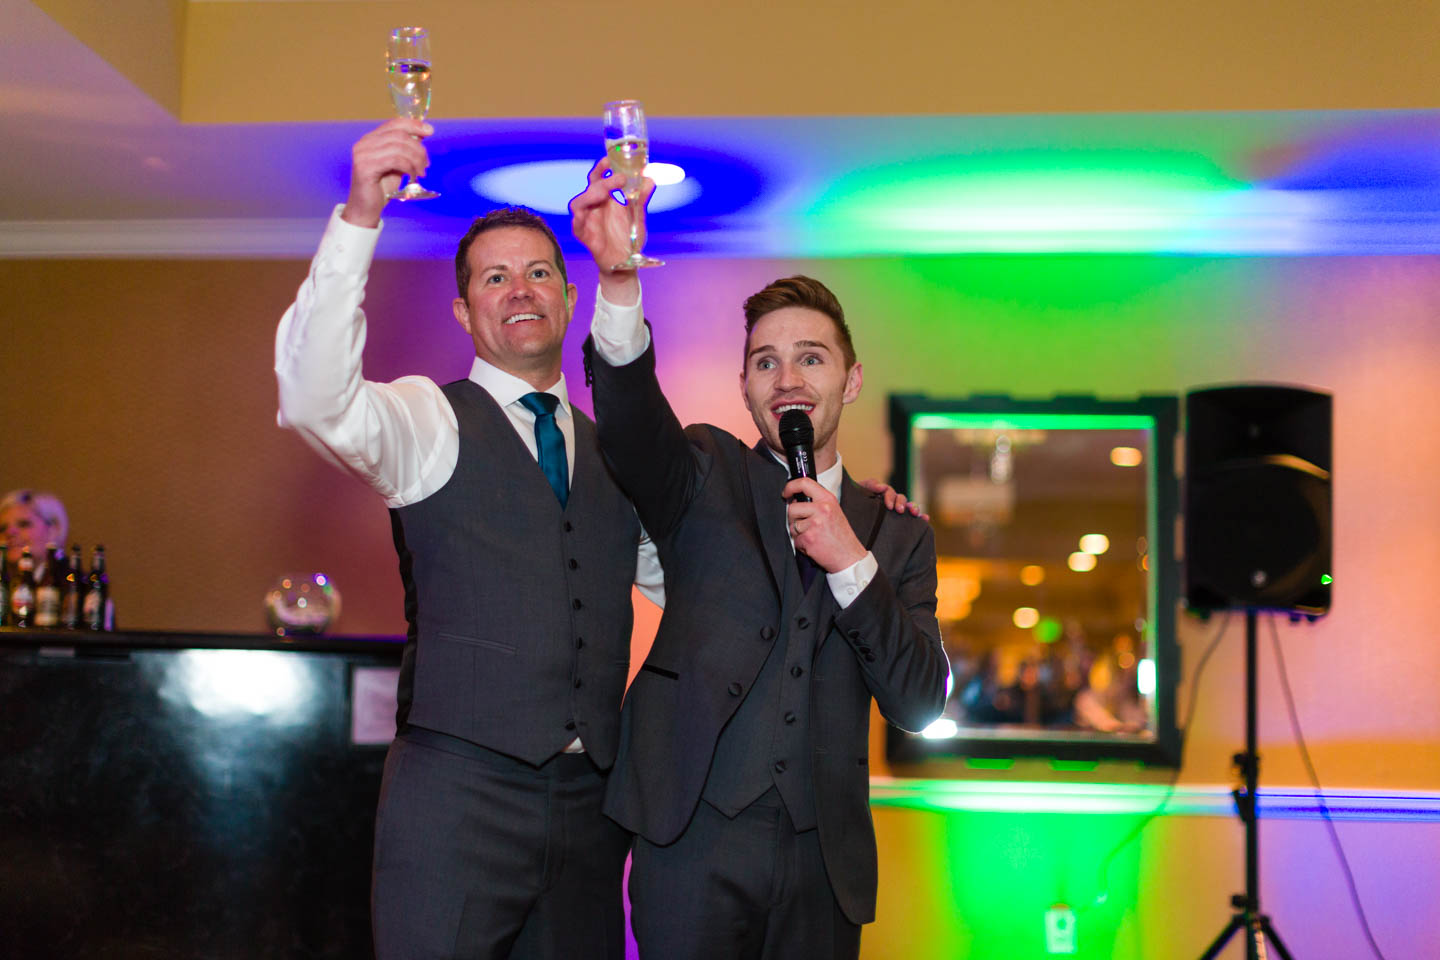 Grooms toast the wedding reception